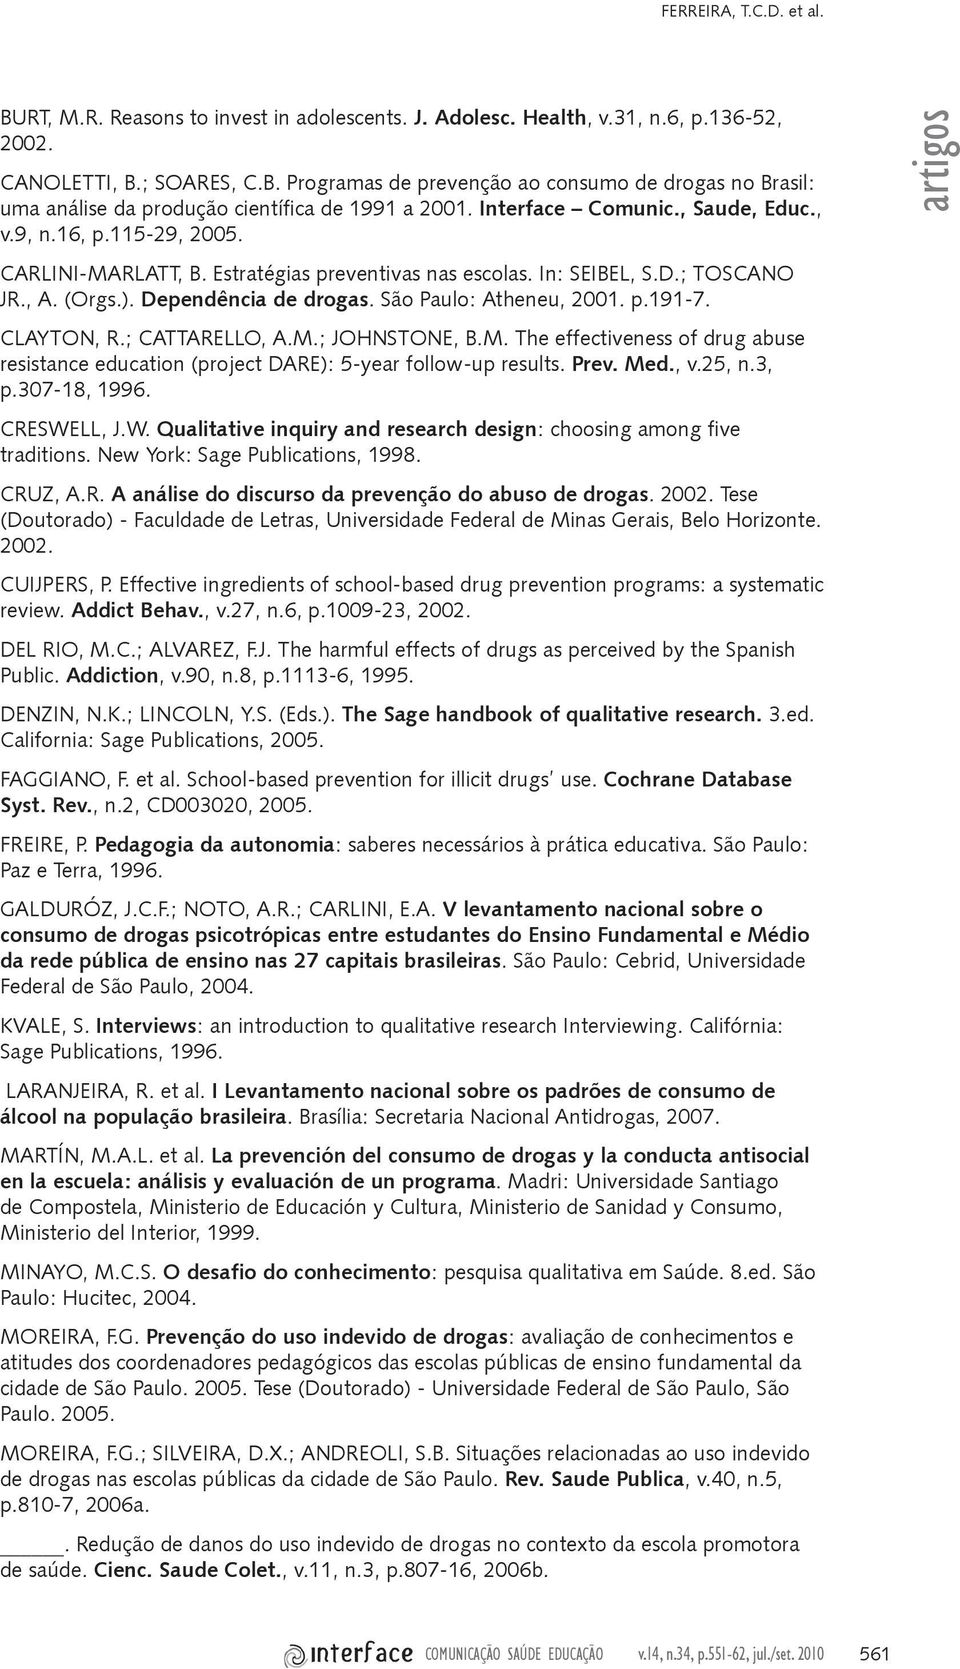 São Paulo: Atheneu, 2001. p.191-7. CLAYTON, R.; CATTARELLO, A.M.; JOHNSTONE, B.M. The effectiveness of drug abuse resistance education (project DARE): 5-year follow-up results. Prev. Med., v.25, n.